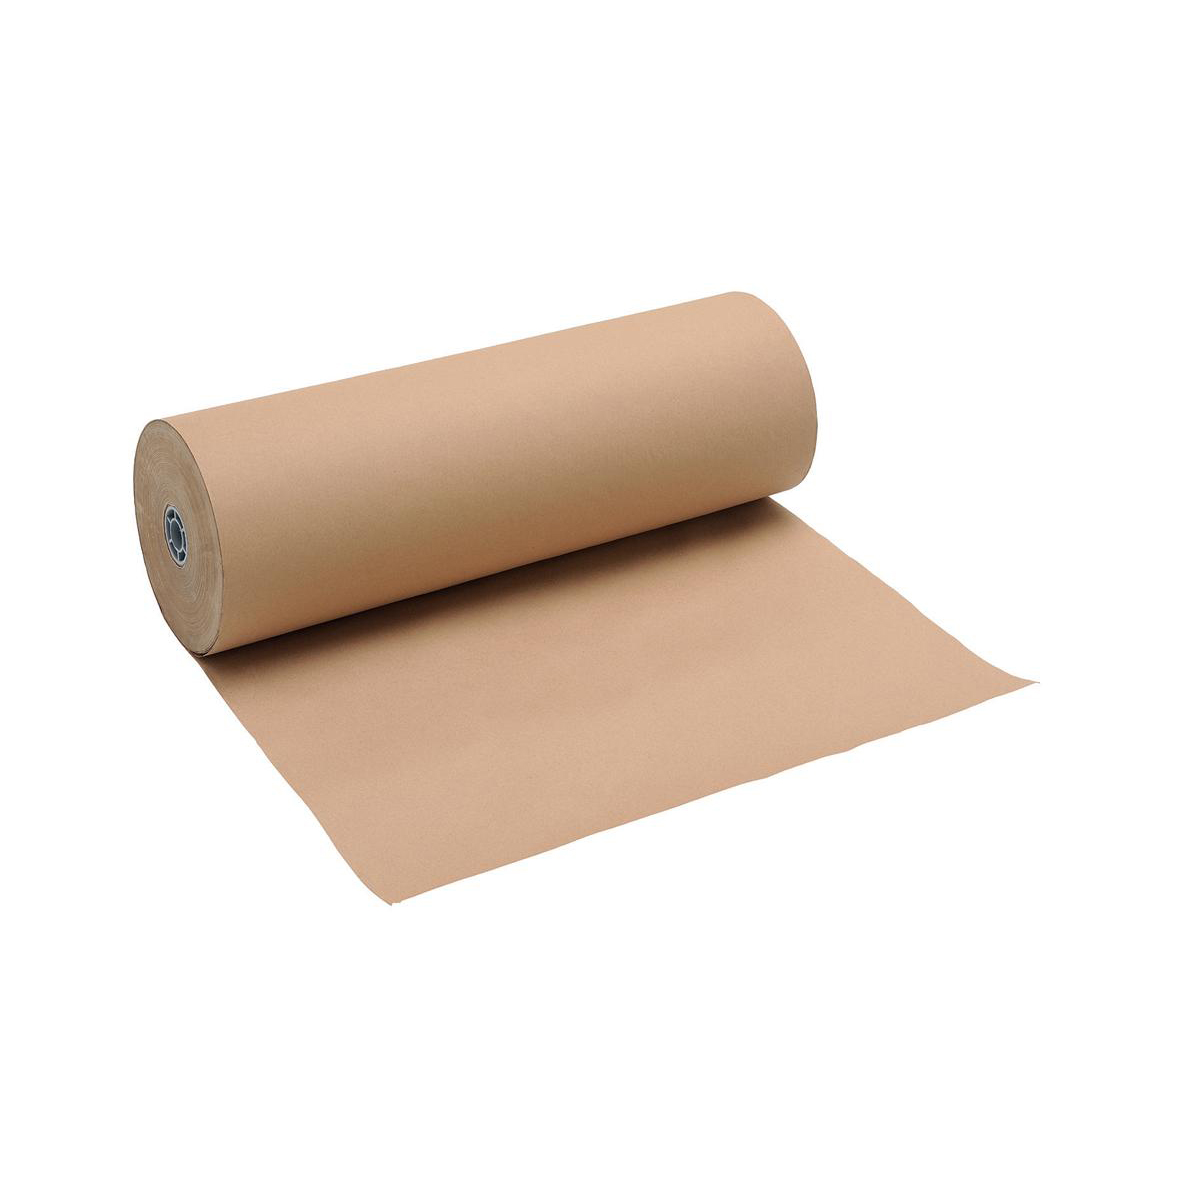 Gift paper, bags or boxes Counter Wrapping Paper Roll Kraft 90gsm 600mmx225m